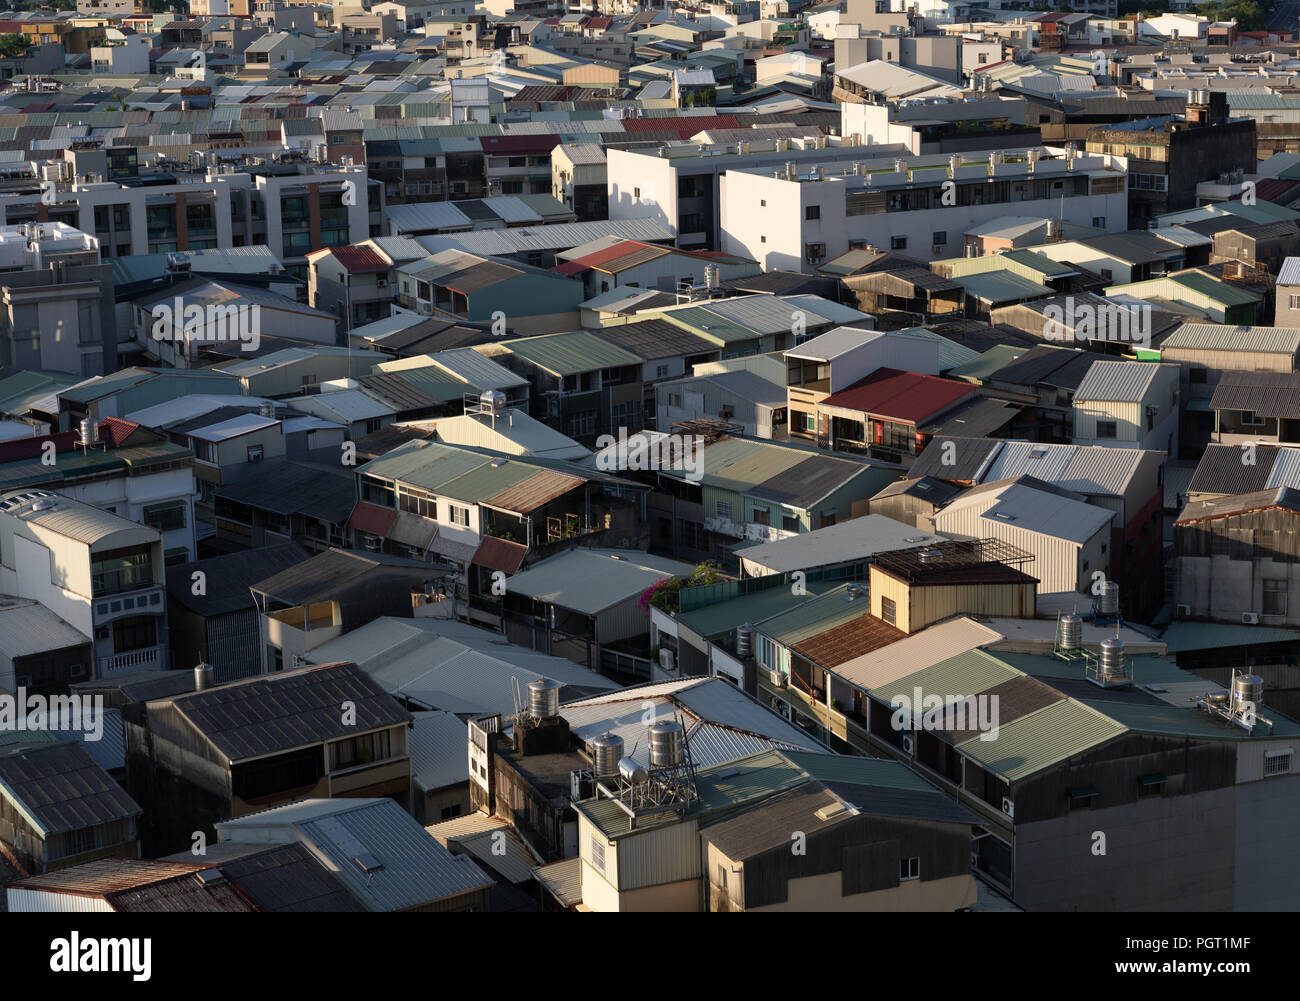 A sprawl of older low houses in Tainan in Southern Taiwan early in the morning - Stock Image